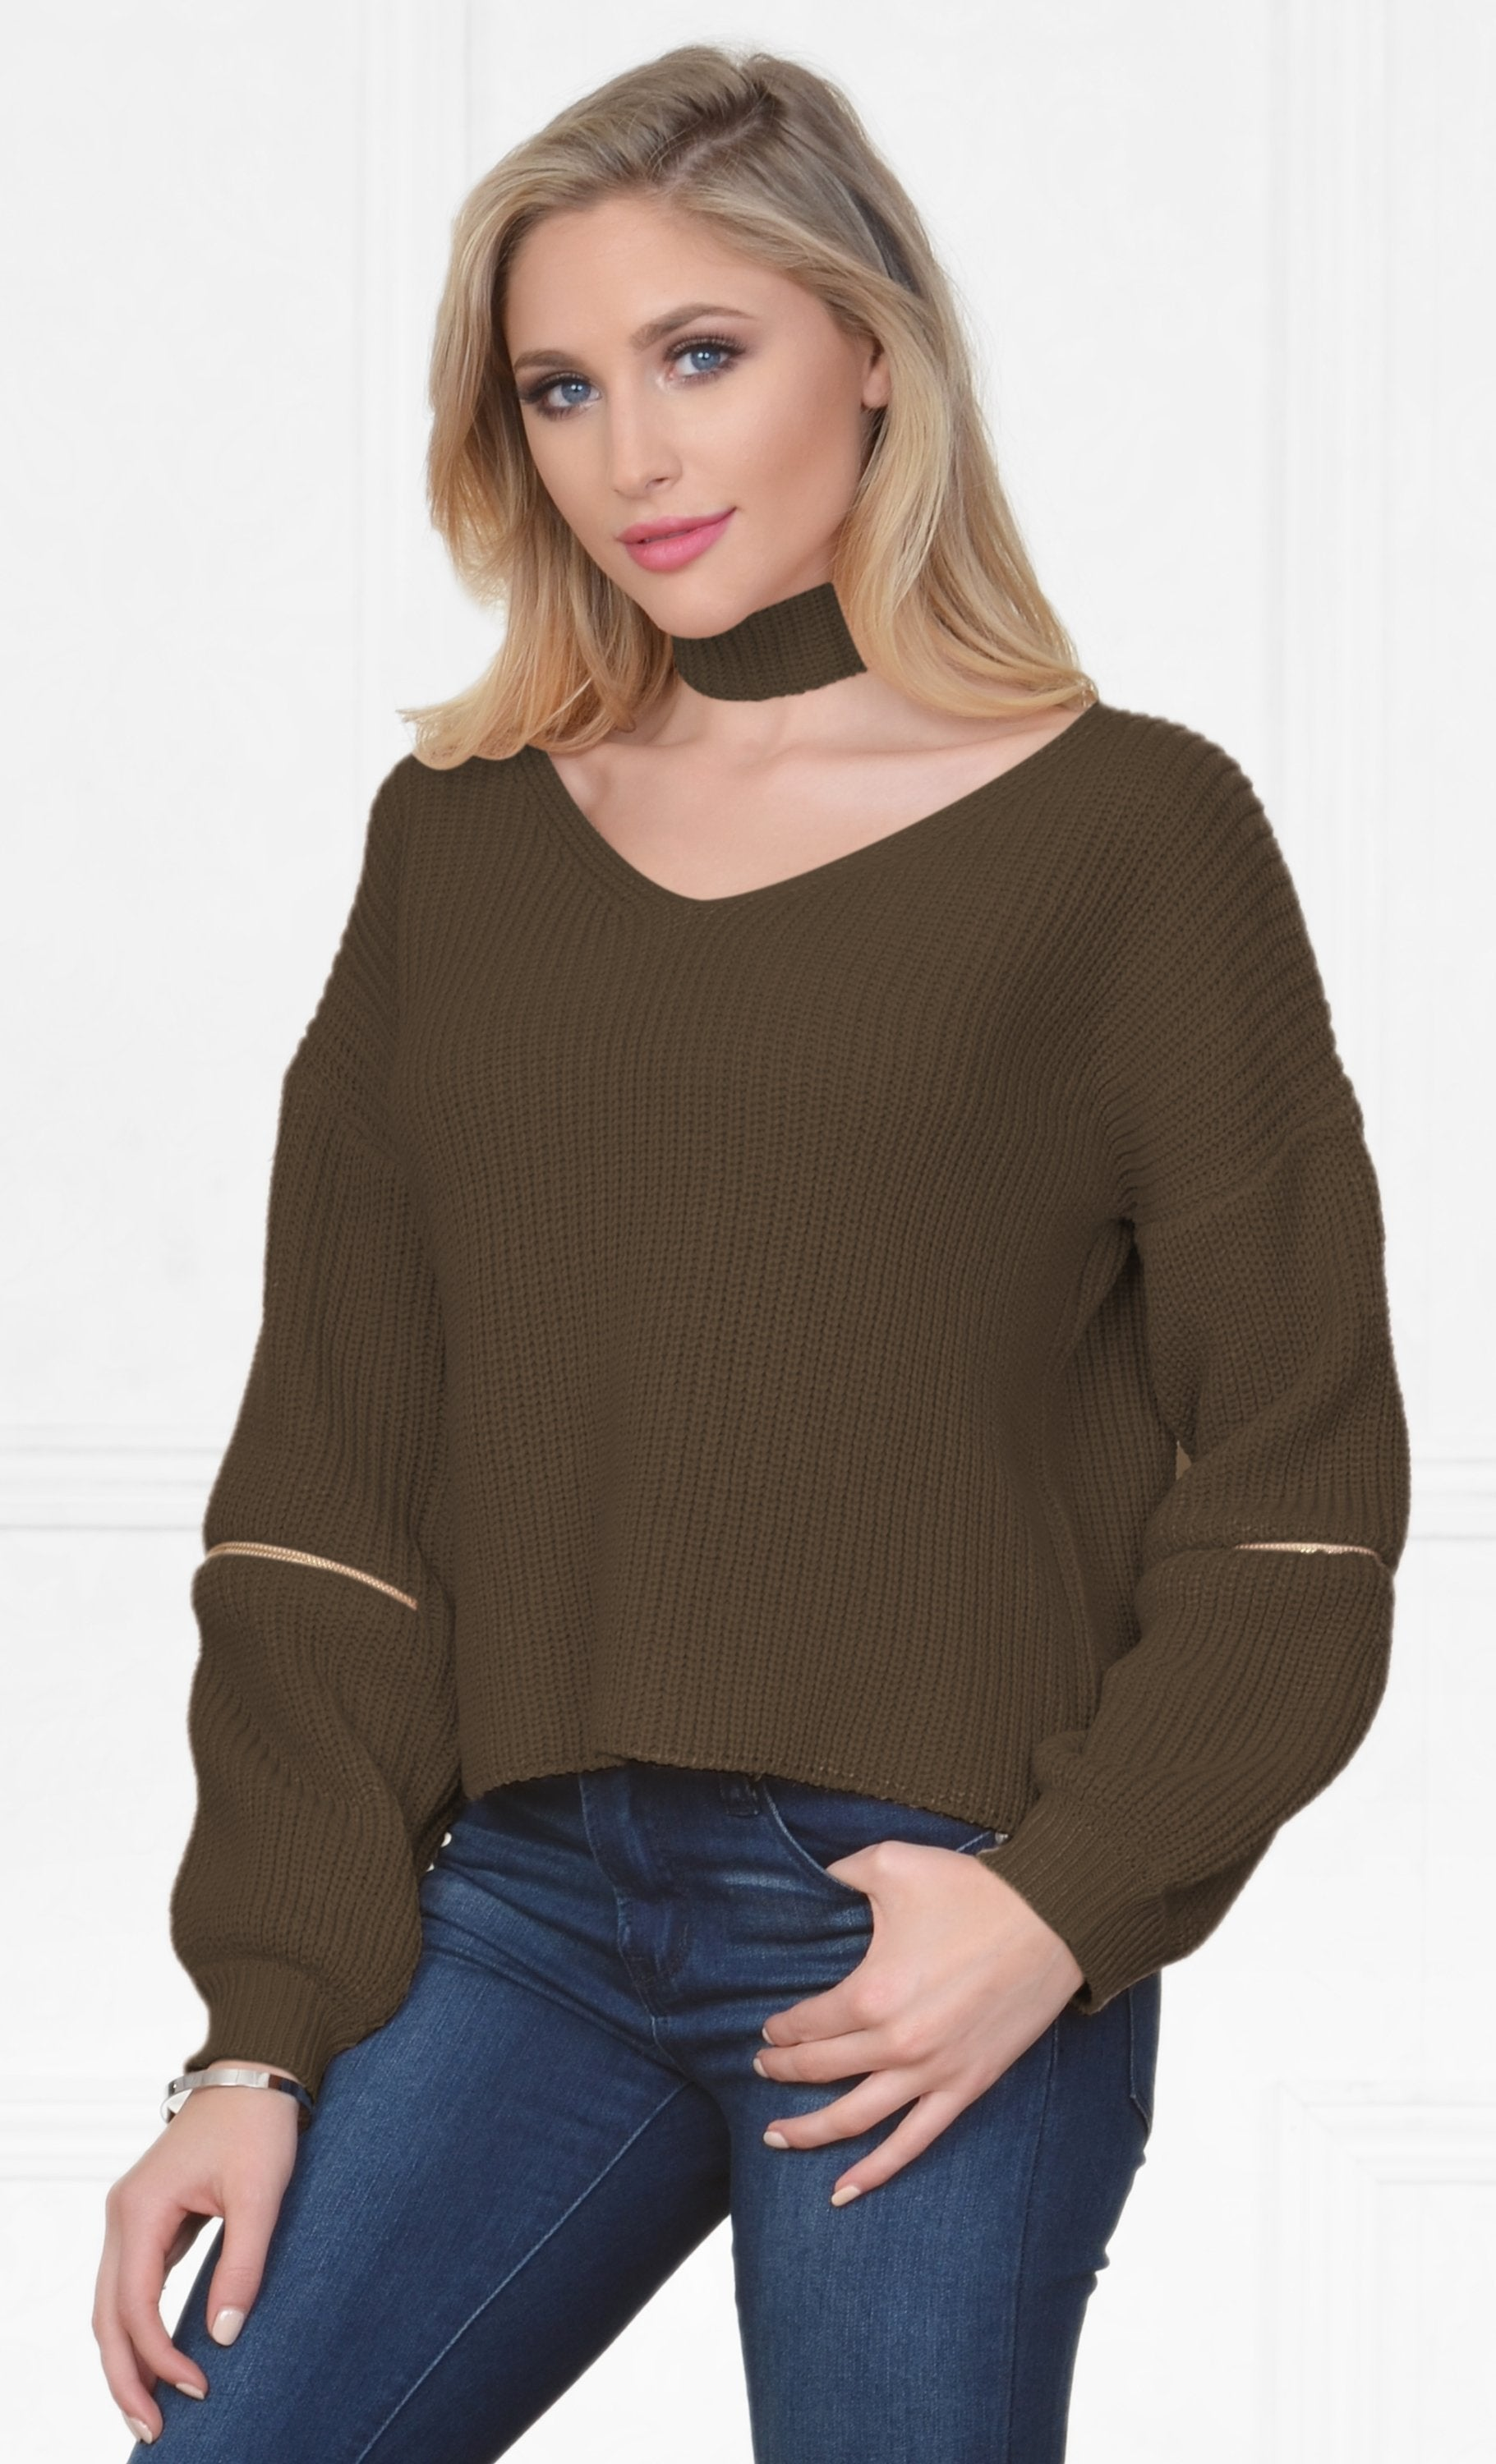 Indie XO Layer By Layer Olive Green Long Sleeve Loose Zipper Elbow V Neck Detachable Choker Pullover Sweater